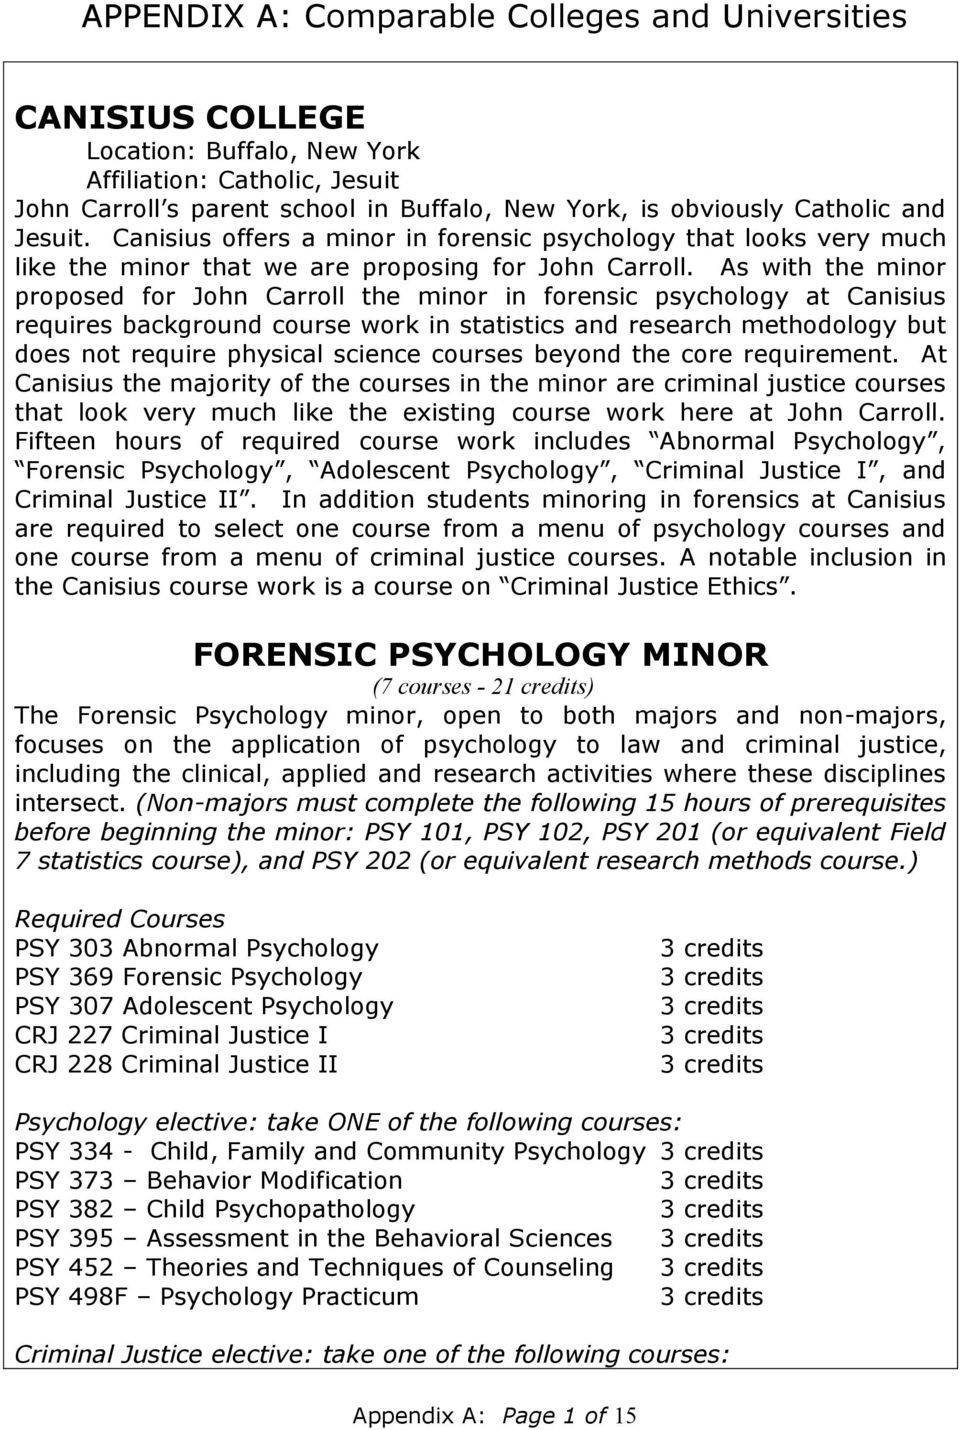 As with the minor proposed for John Carroll the minor in forensic psychology at Canisius requires background course work in statistics and research methodology but does not require physical science